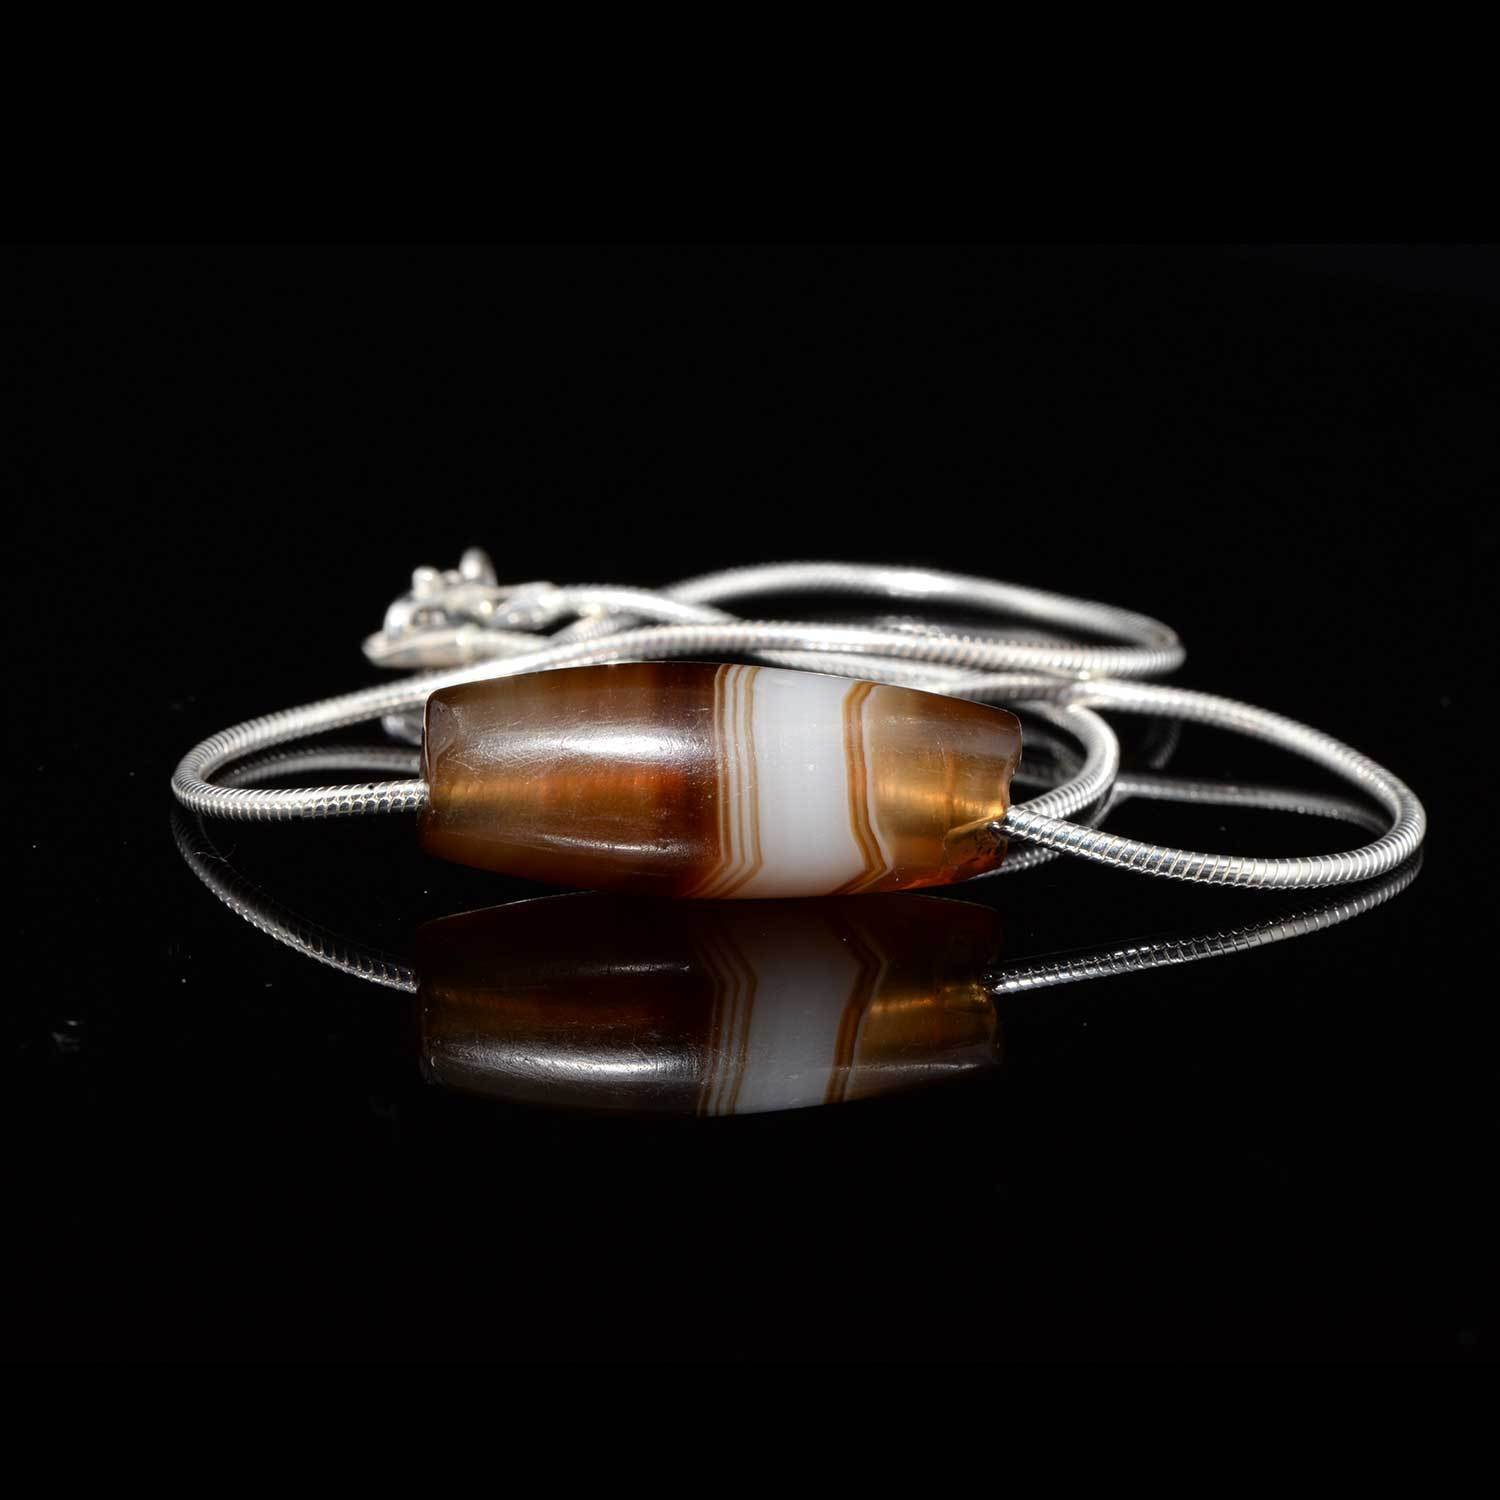 A Near Eastern Banded Agate set as a pendant, ca. 1st millennium BCE - Sands of Time Ancient Art